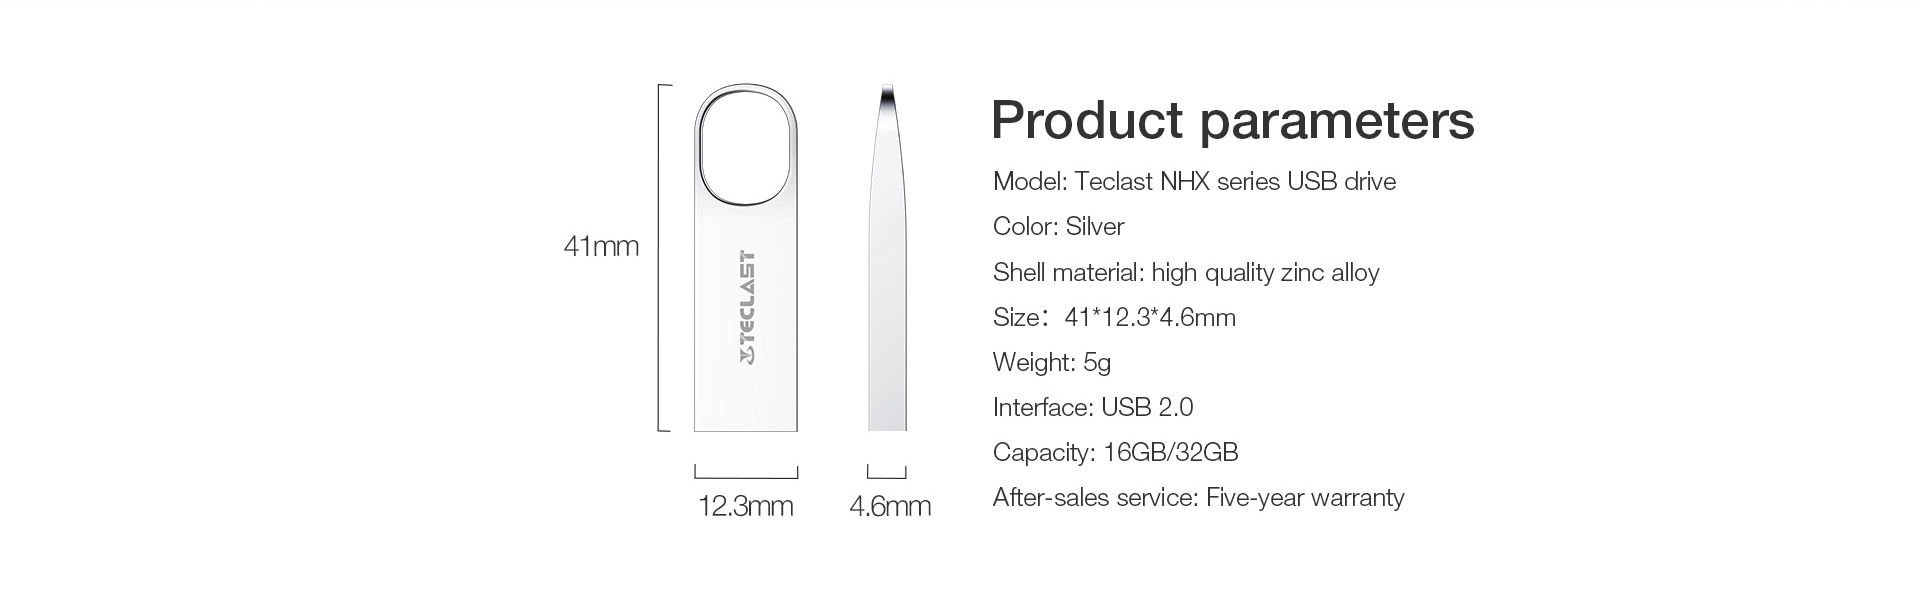 TECLAST 16/32GB USB 2.0 Mini Pendrive USB Flash Drive USB Disk